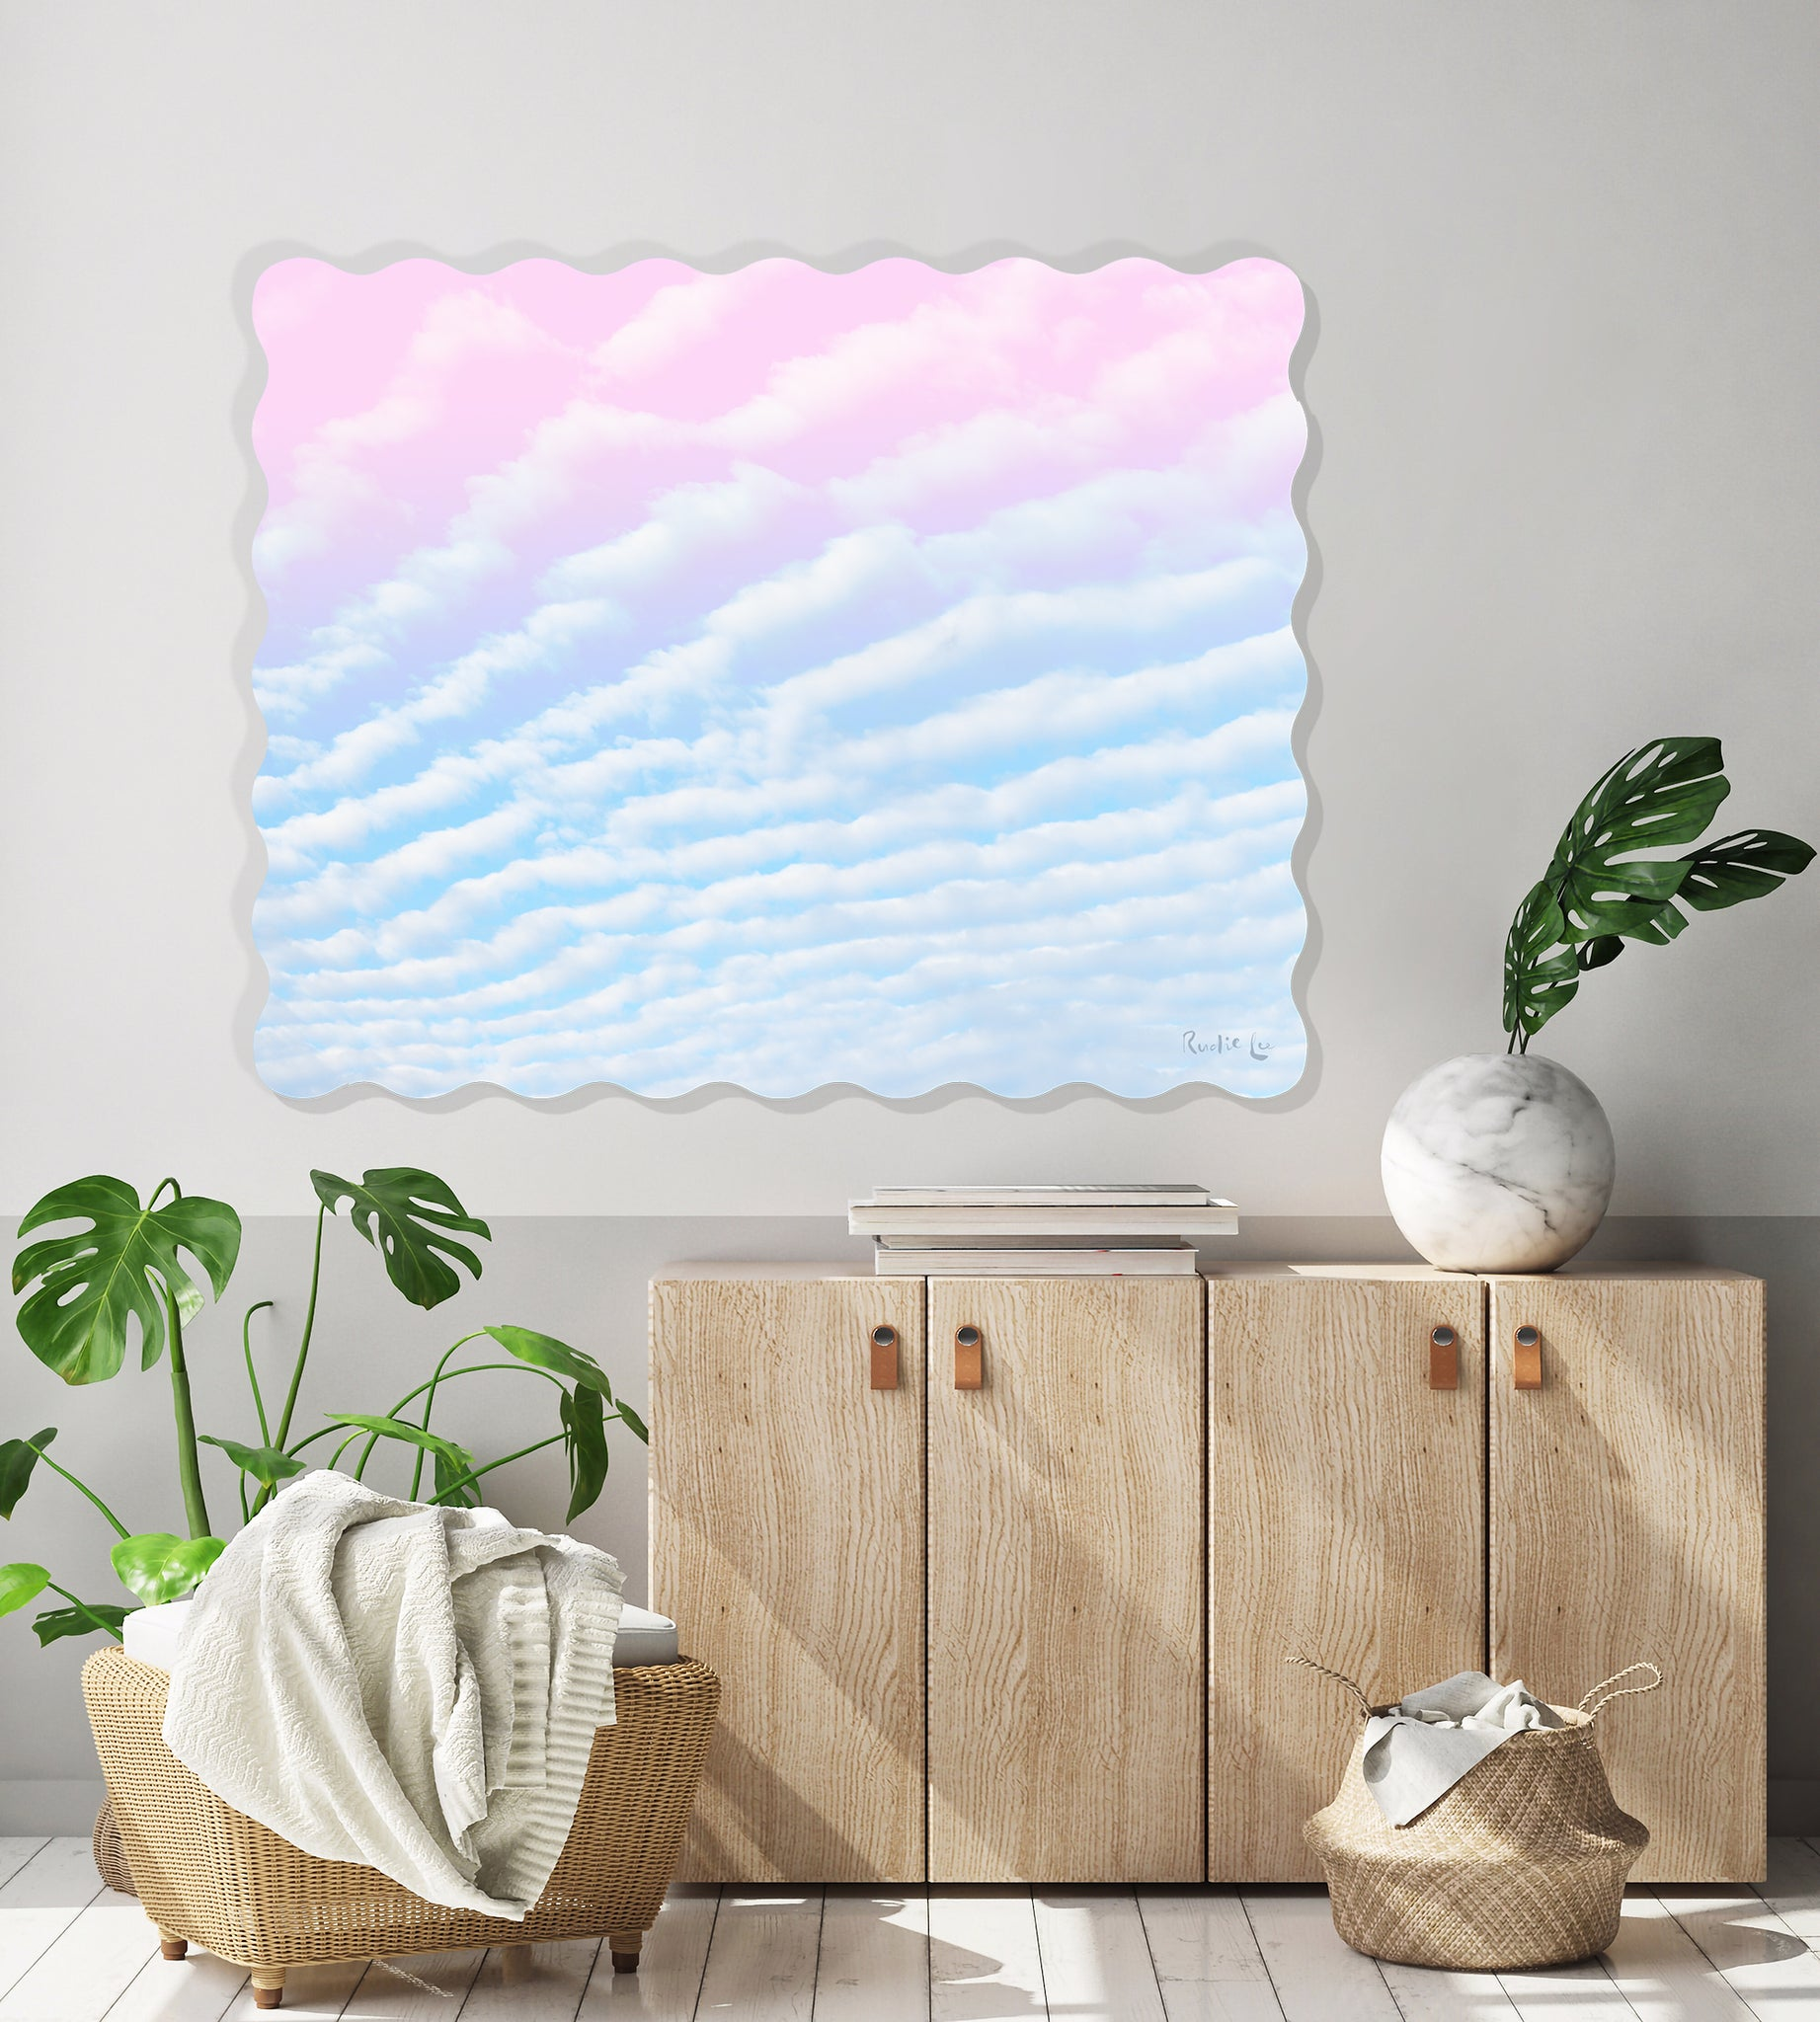 Cotton Candy Sky No. 03 by Rudie Lee